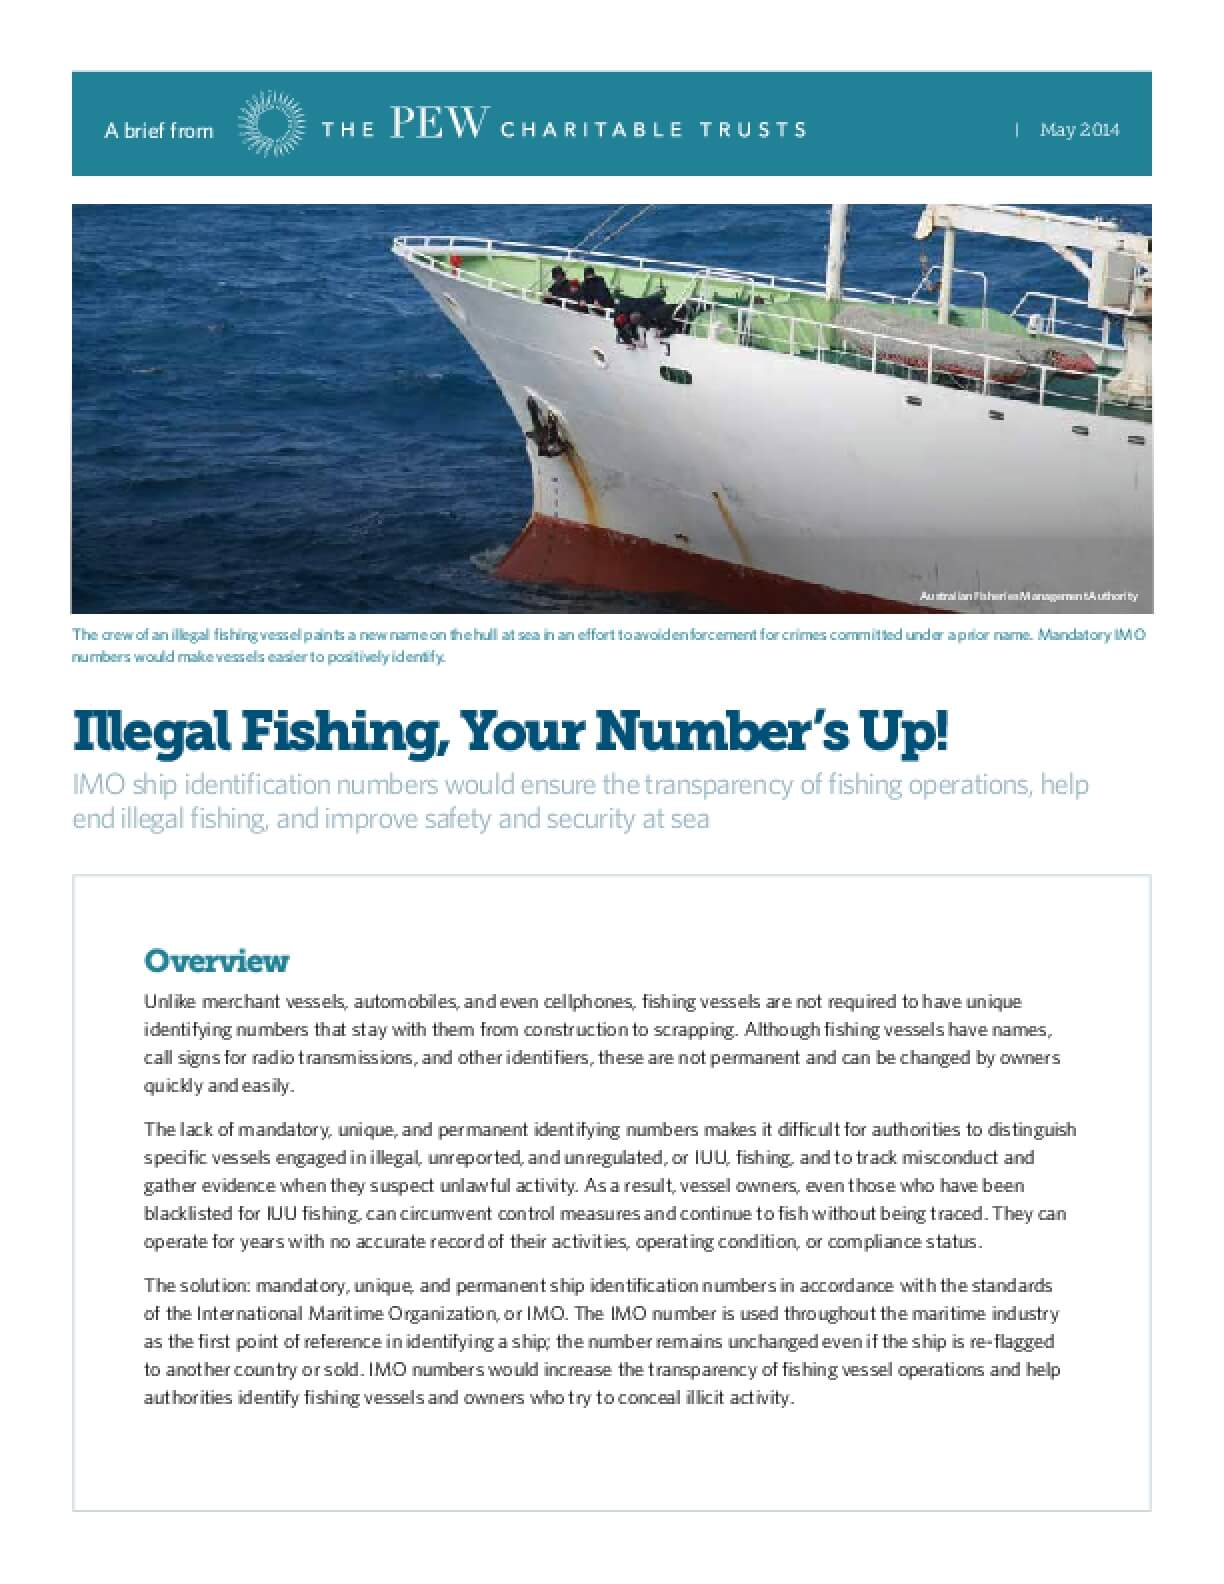 Illegal Fishing, Your Number's Up!